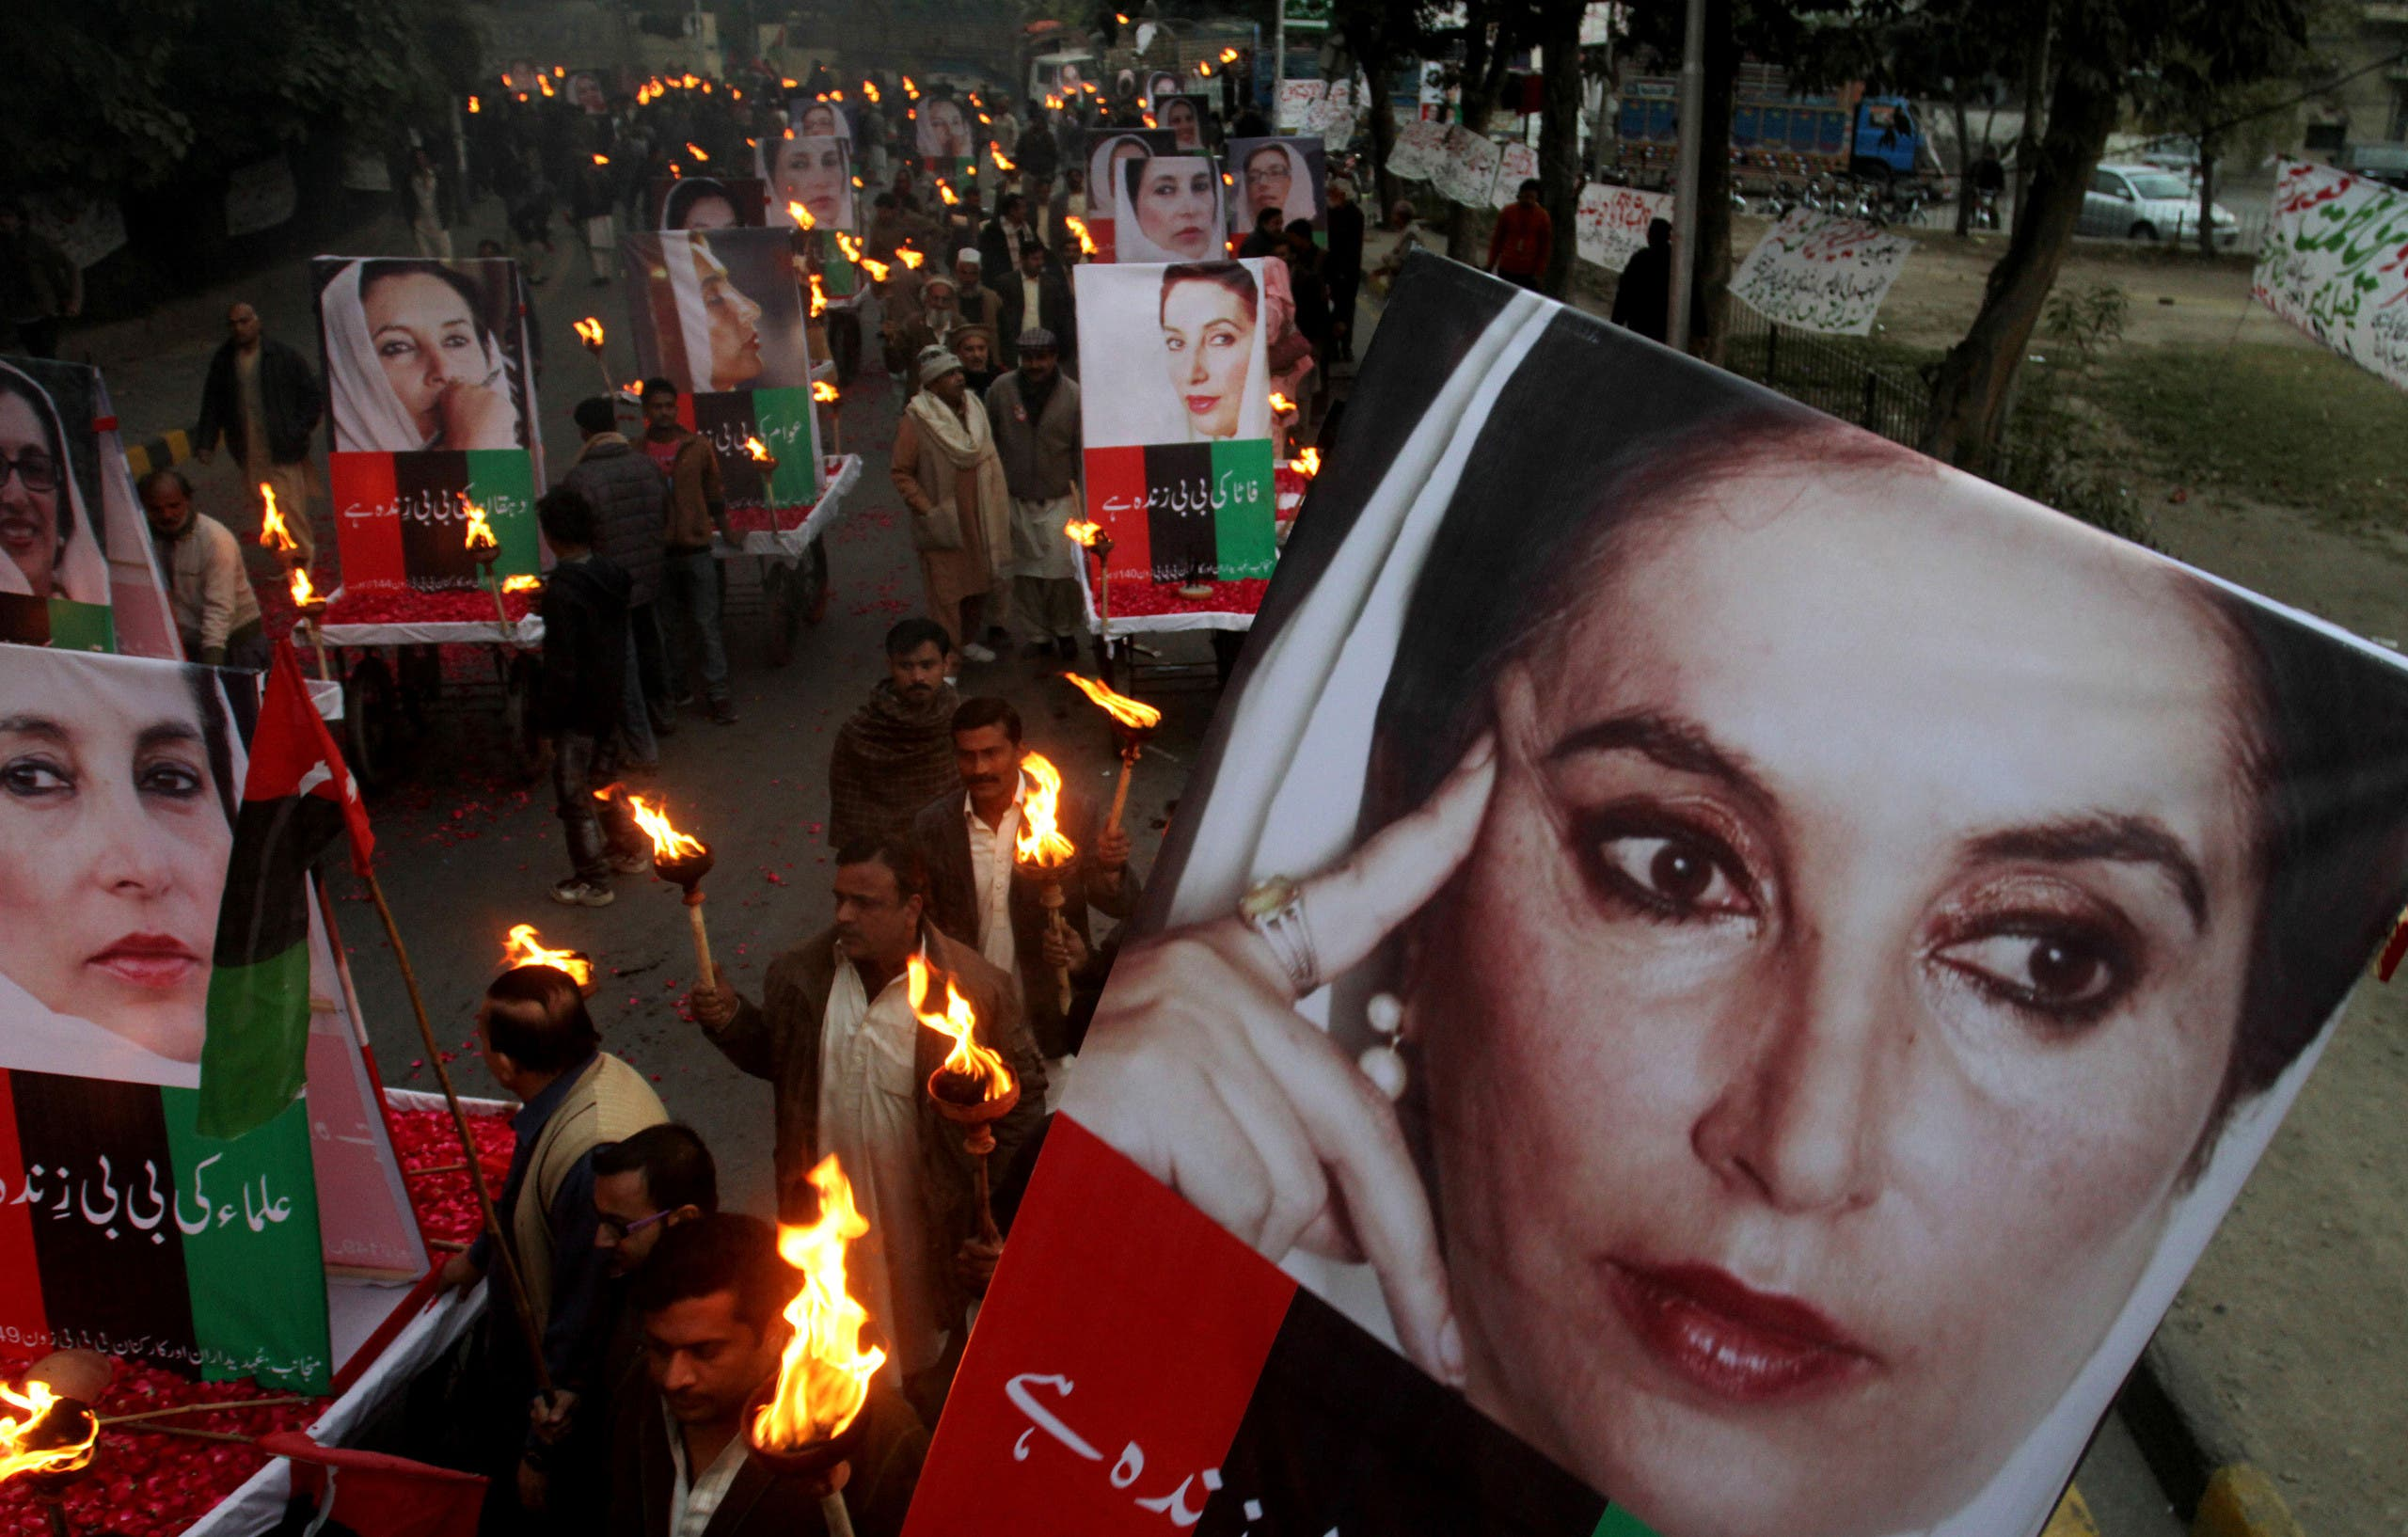 Supporters of Pakistan's slain leader Benazir Bhutto rally in Lahore, Pakistan, on the sixth anniversary of her death, Friday, Dec. 27, 2013. (AP)